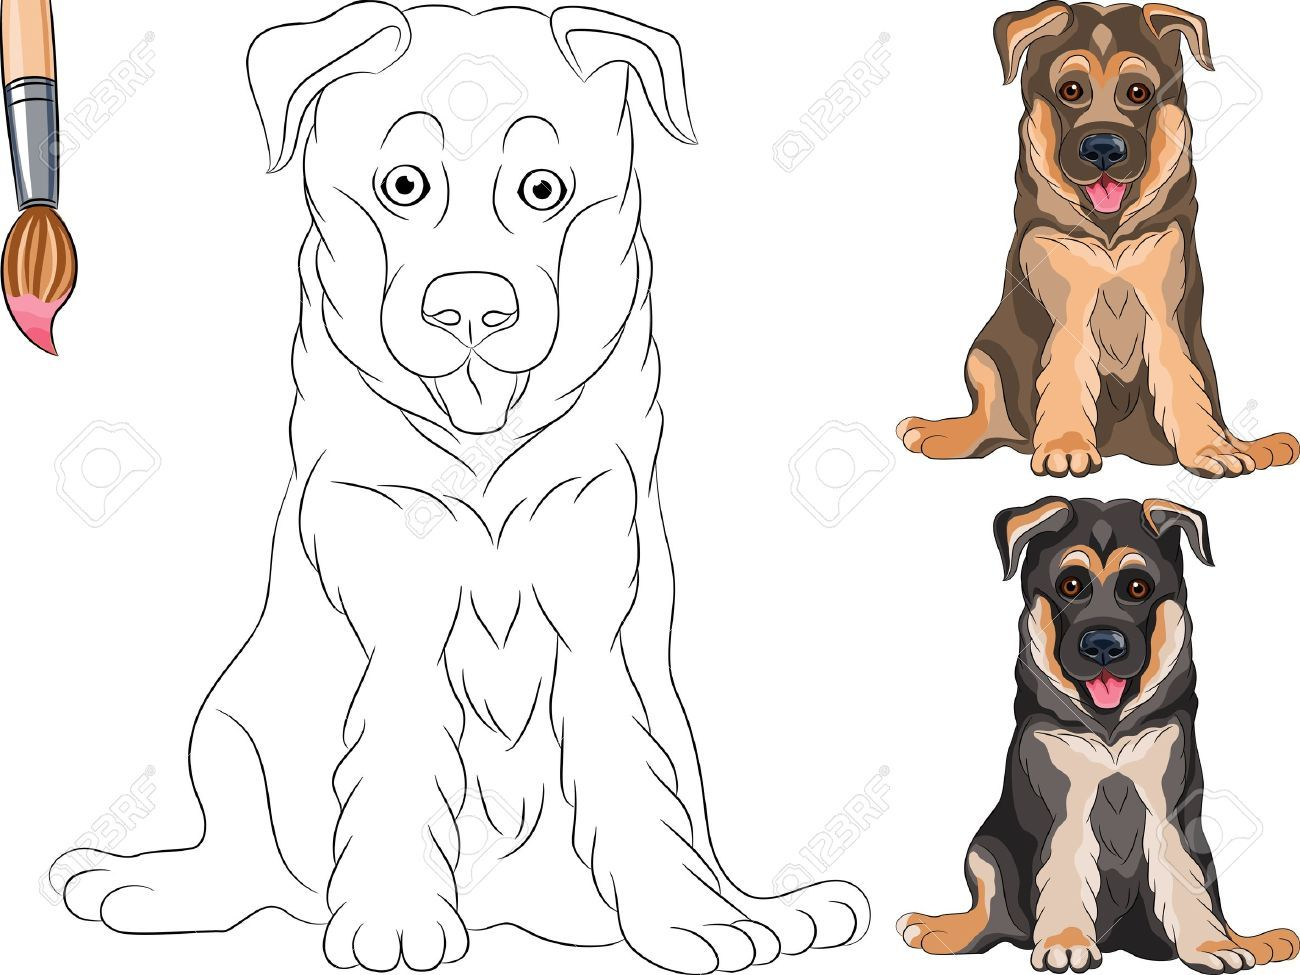 Coloring Book For Children Of Funny Smiling Puppy Dog German Color SheetsGerman Shepherd